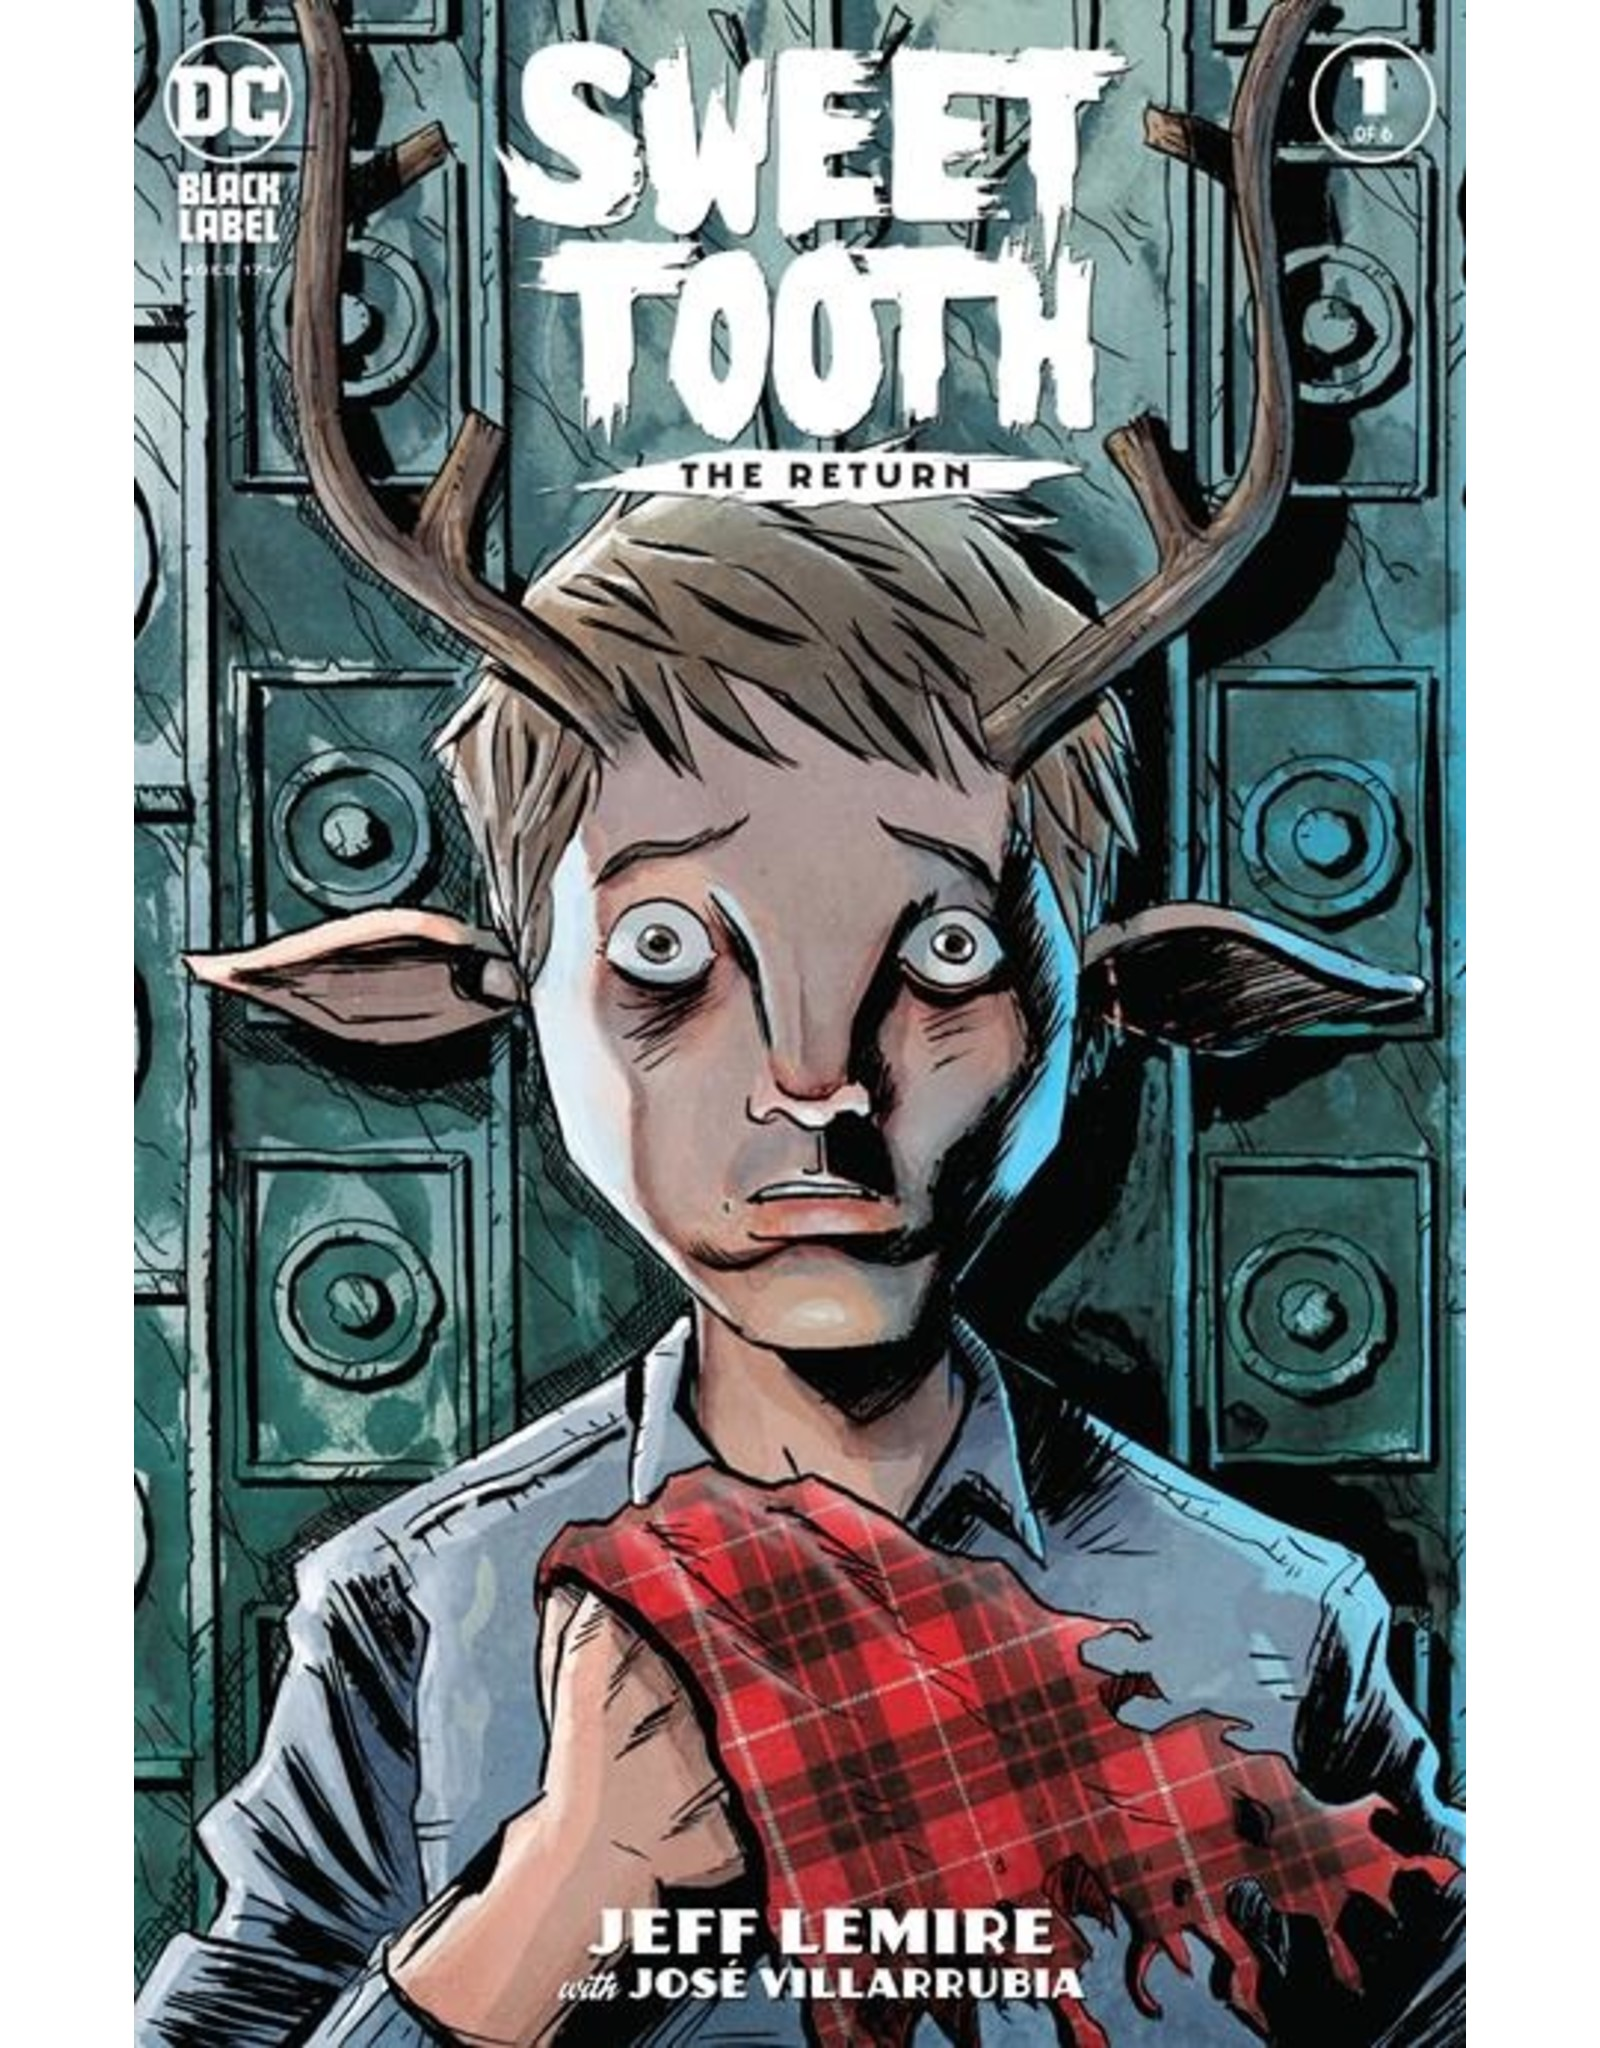 DC COMICS SWEET TOOTH THE RETURN #1 (OF 6) CVR A JEFF LEMIRE